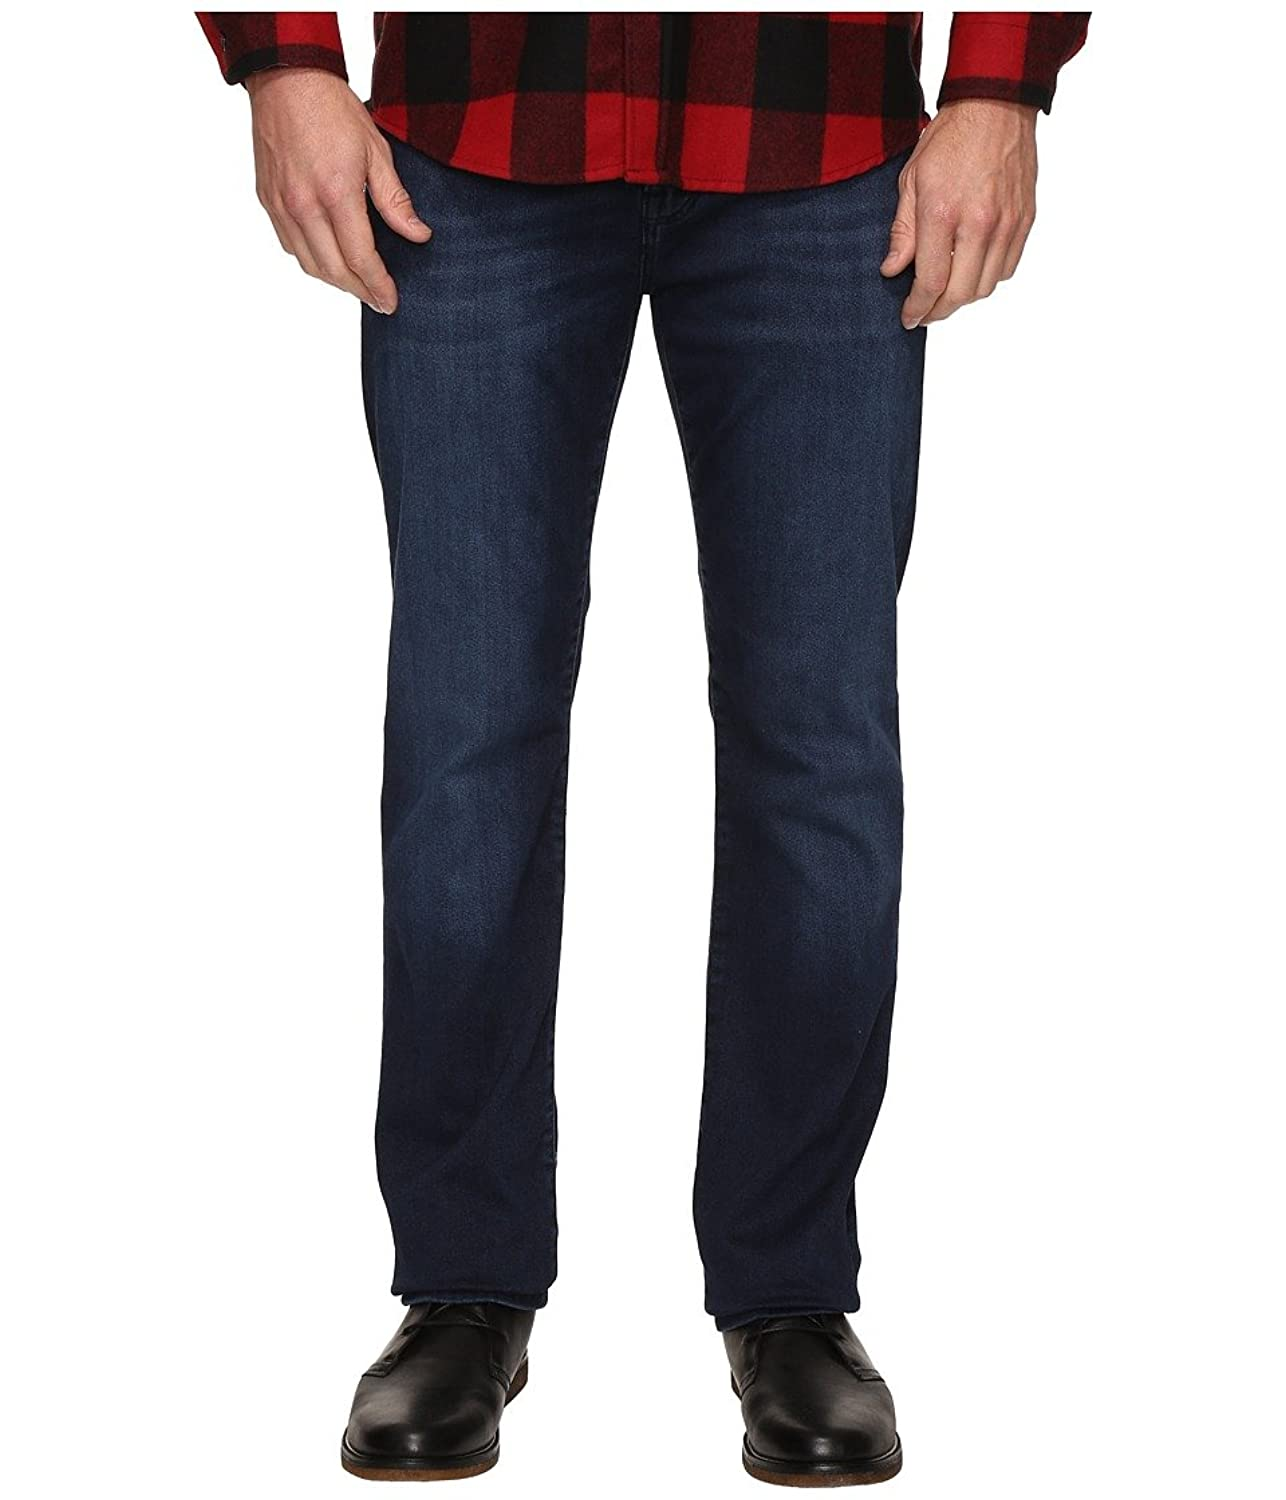 34 HERITAGE COURAGE FIT DEEP SPORTY STRAIGHT LEG JEAN